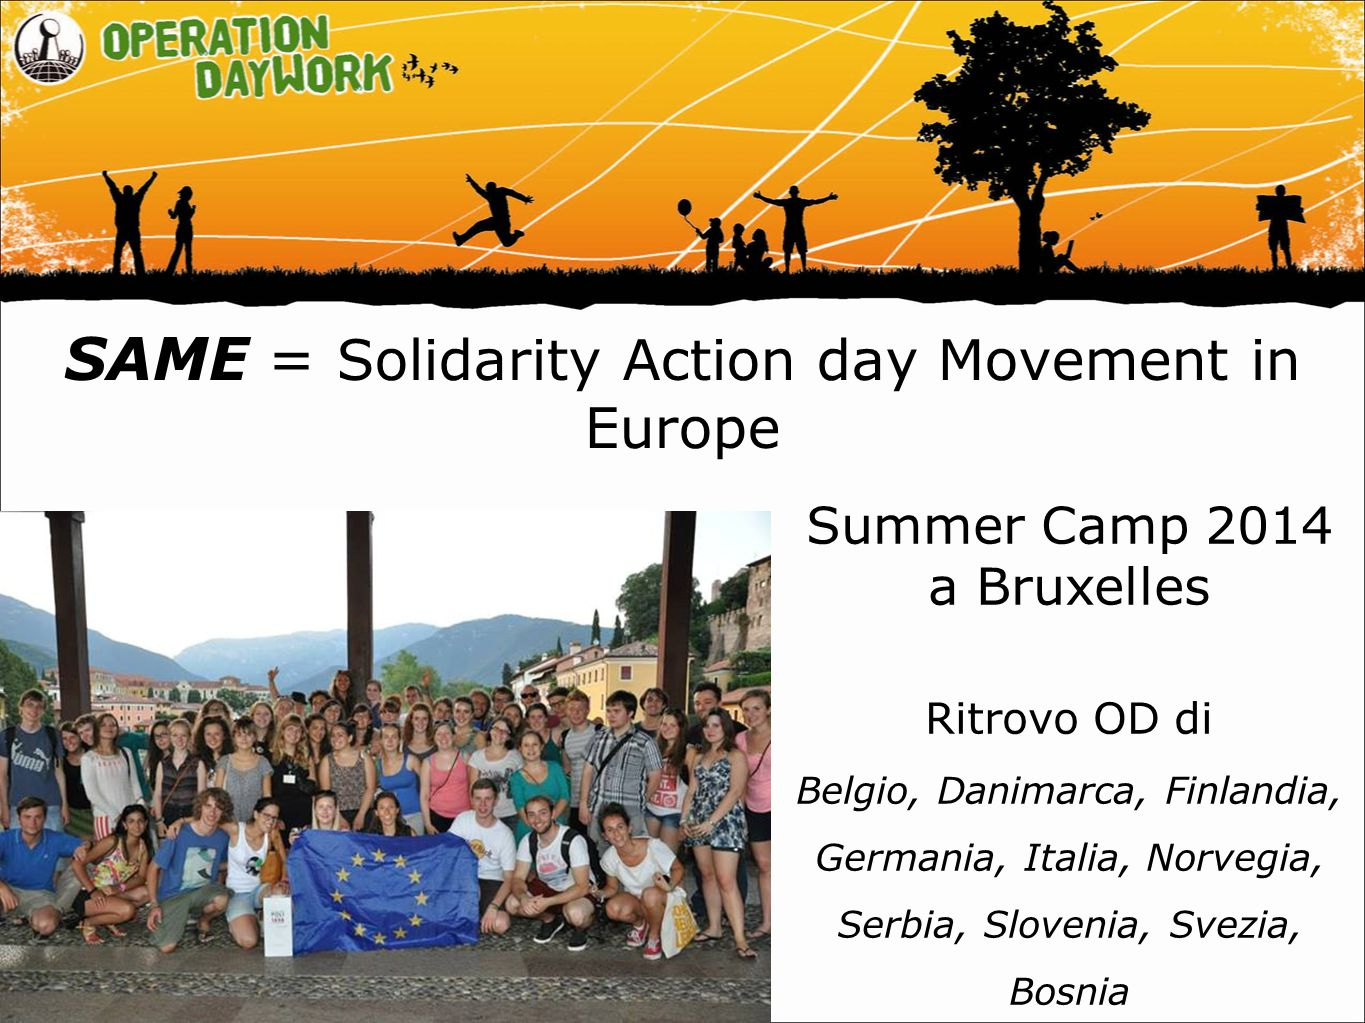 SAME = Solidarity Action day Movement in Europe Summer Camp 2014 a Bruxelles Ritrovo OD di Belgio, Danimarca, Finlandia, Germania, Italia, Norvegia, Serbia, Slovenia, Svezia, Bosnia